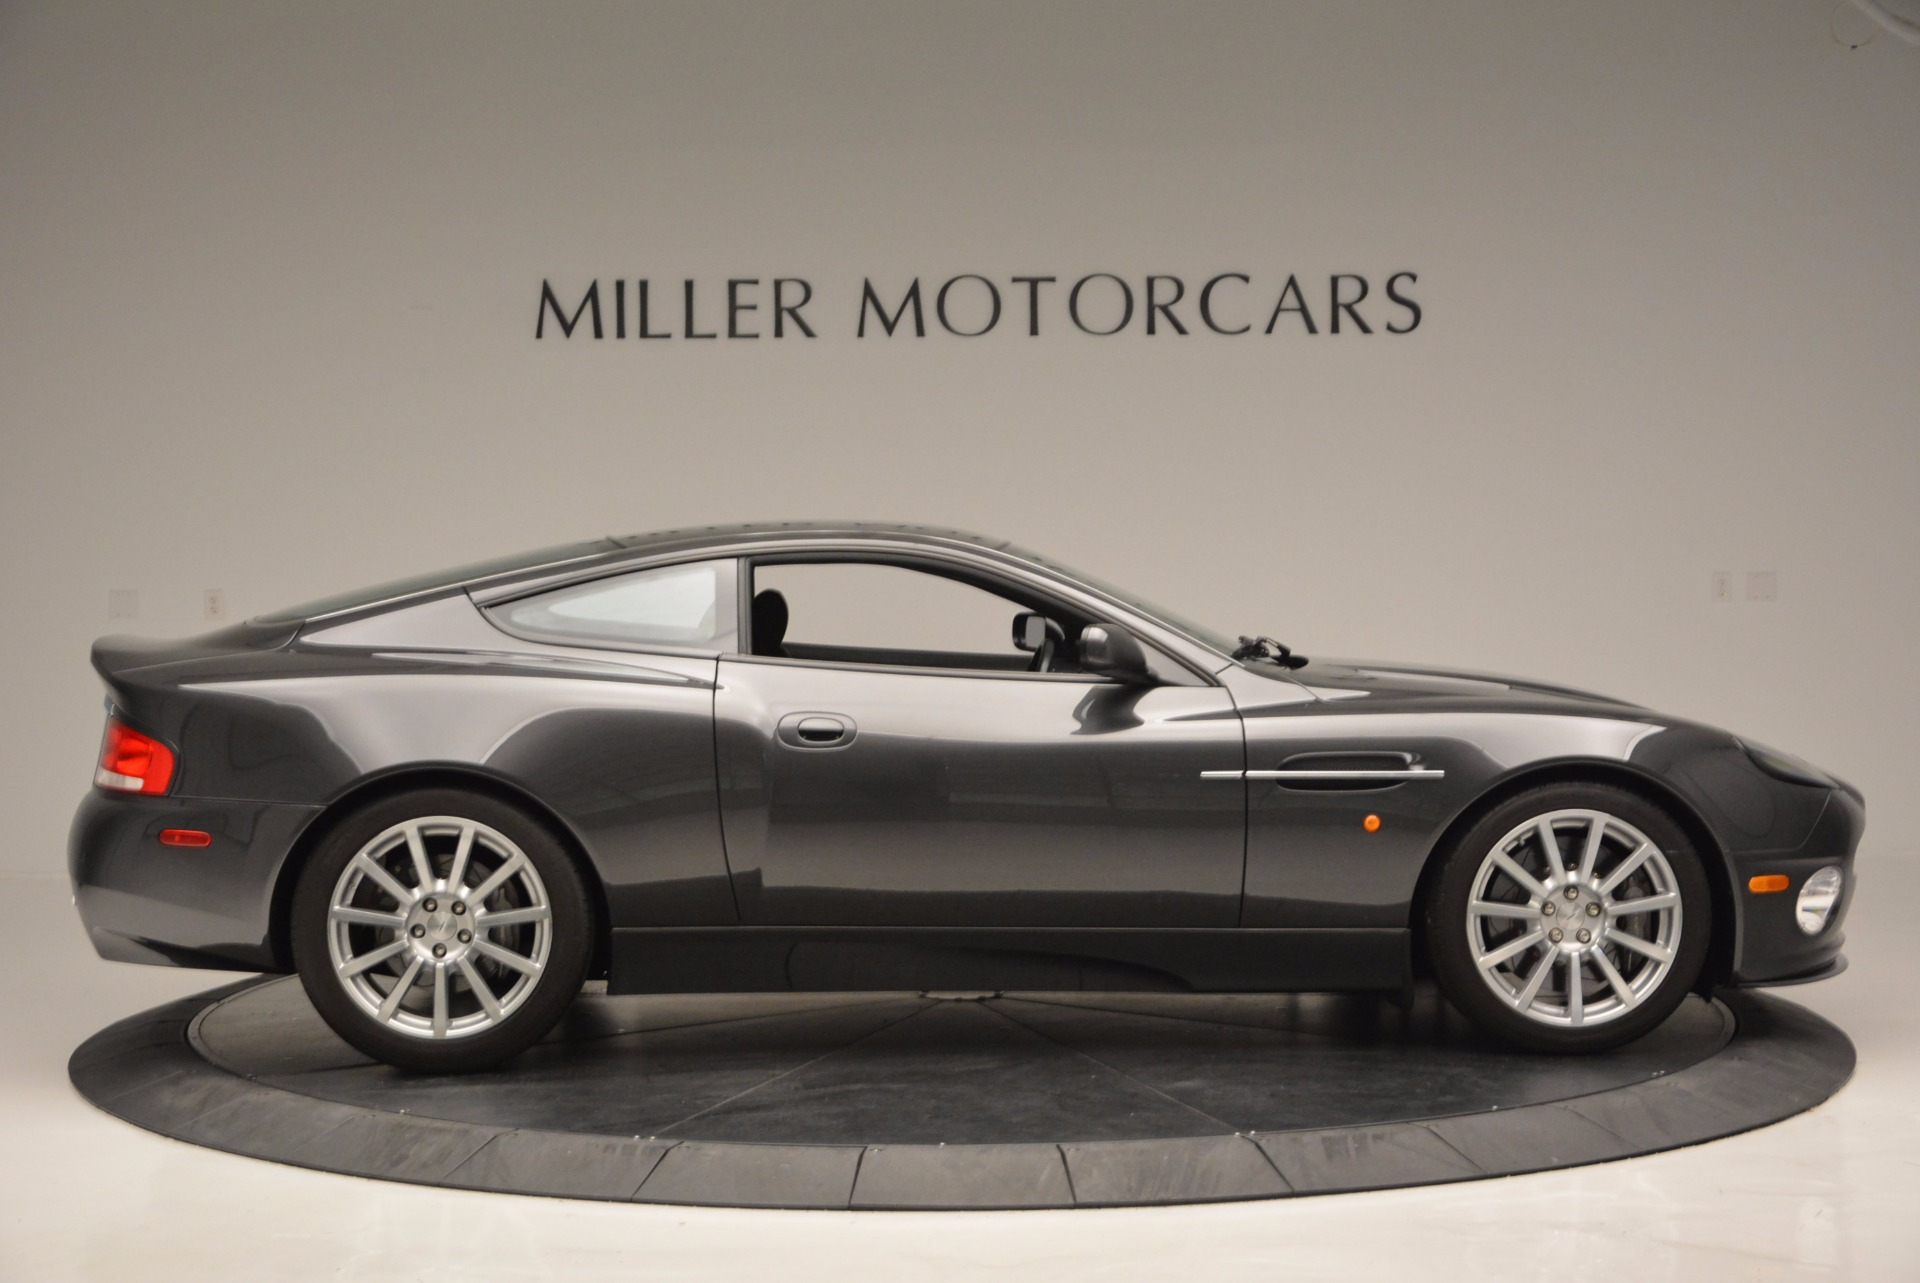 Used 2005 Aston Martin V12 Vanquish S For Sale In Westport, CT 645_p9